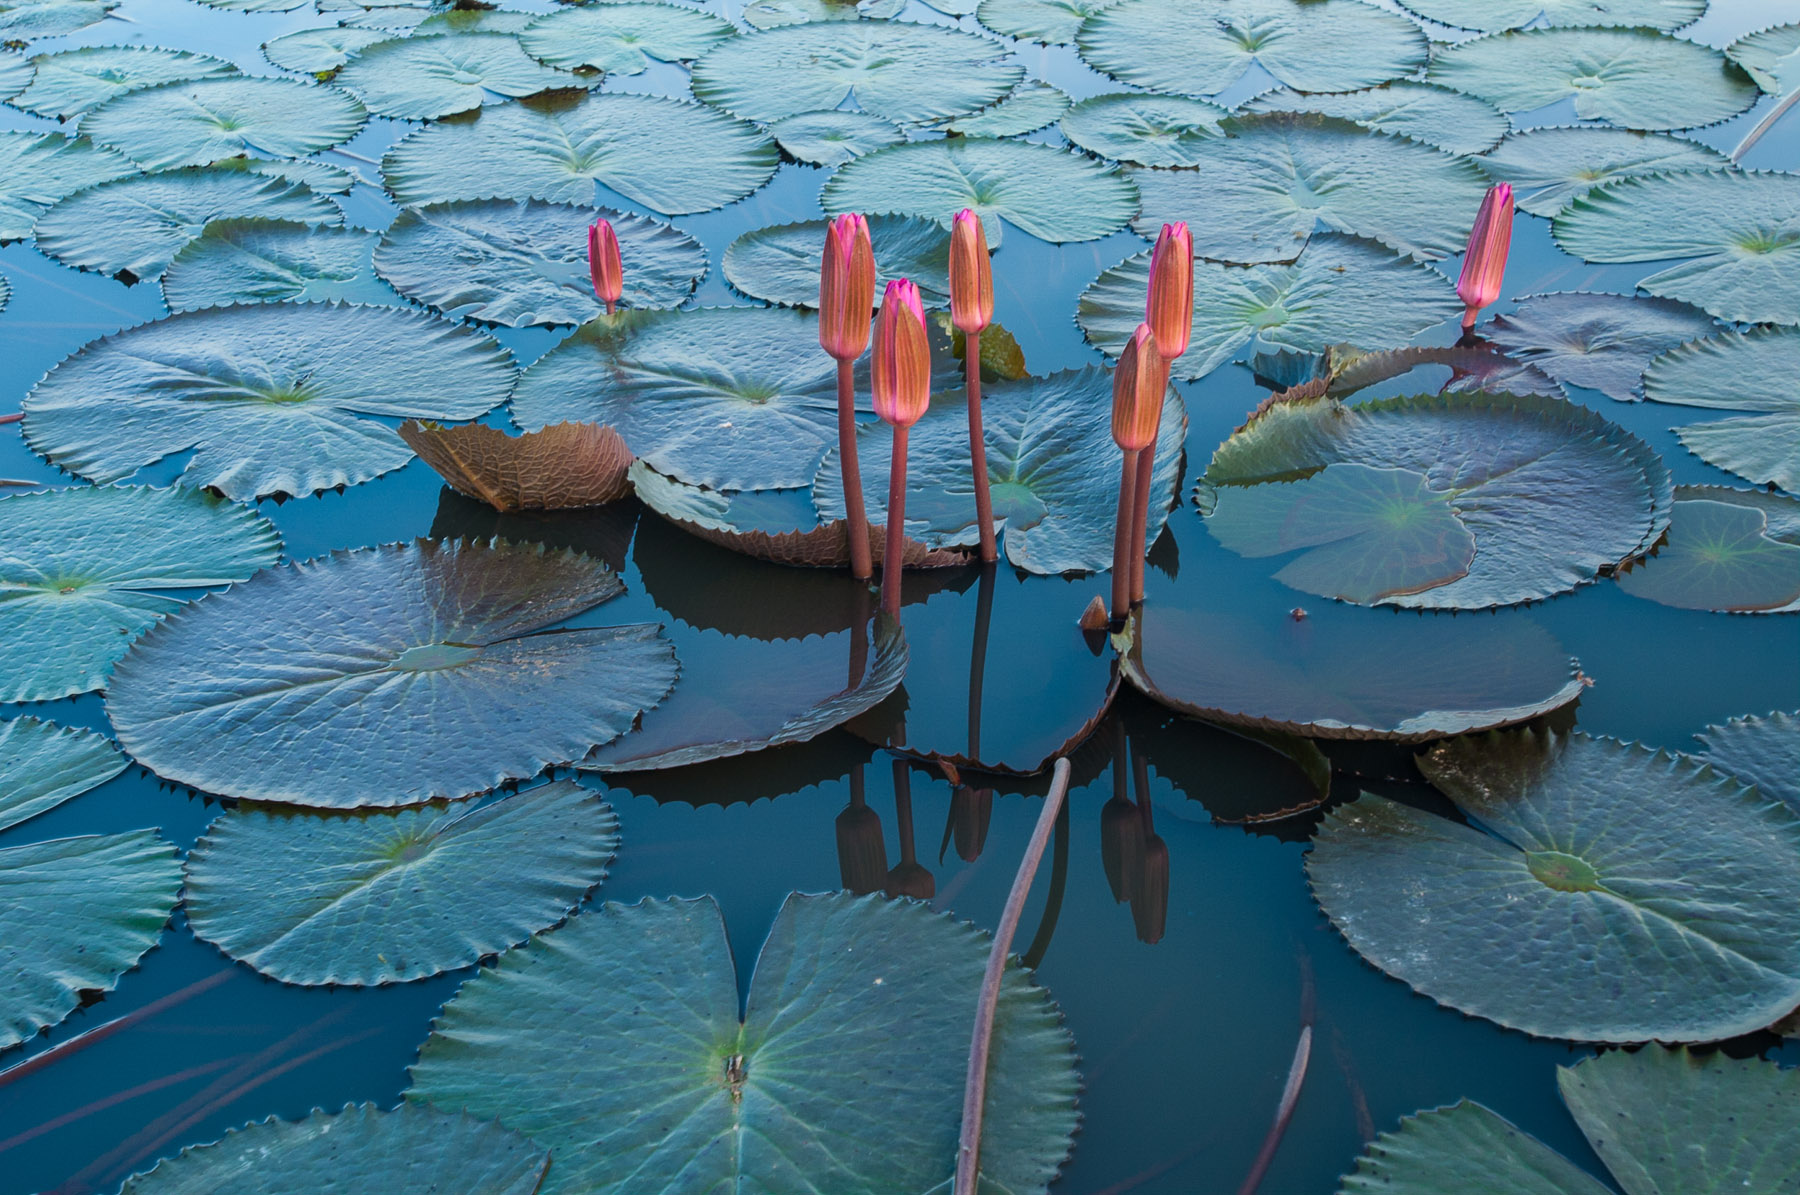 Lotus flowers on lake in Kampot, Cambodia.